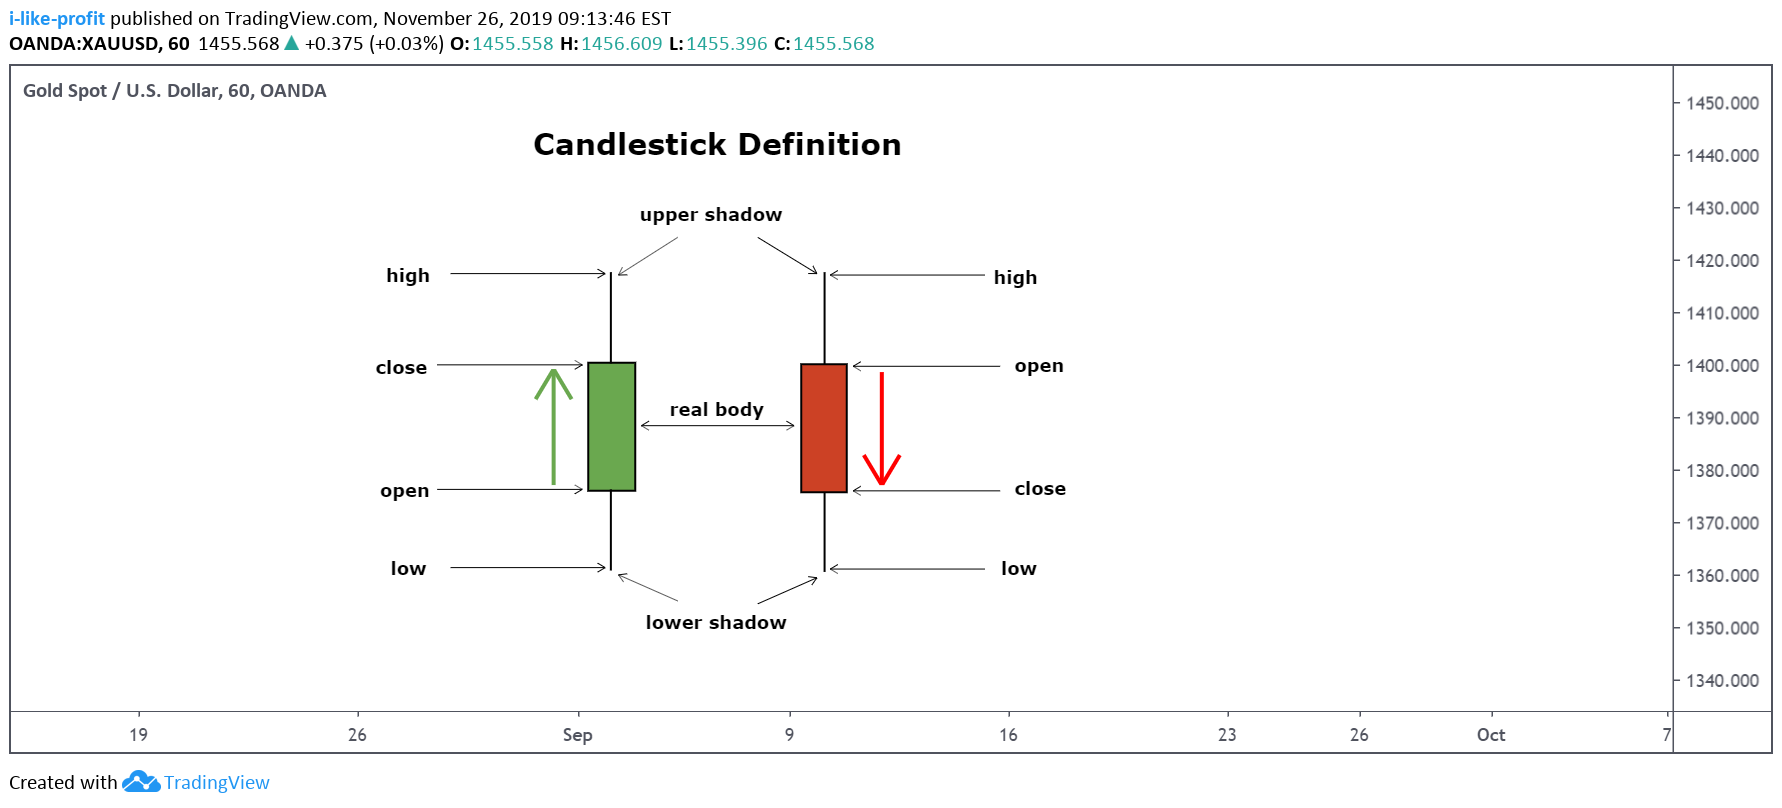 Candlestick Definition For Oanda Xauusd By I Like Profit Tradingview